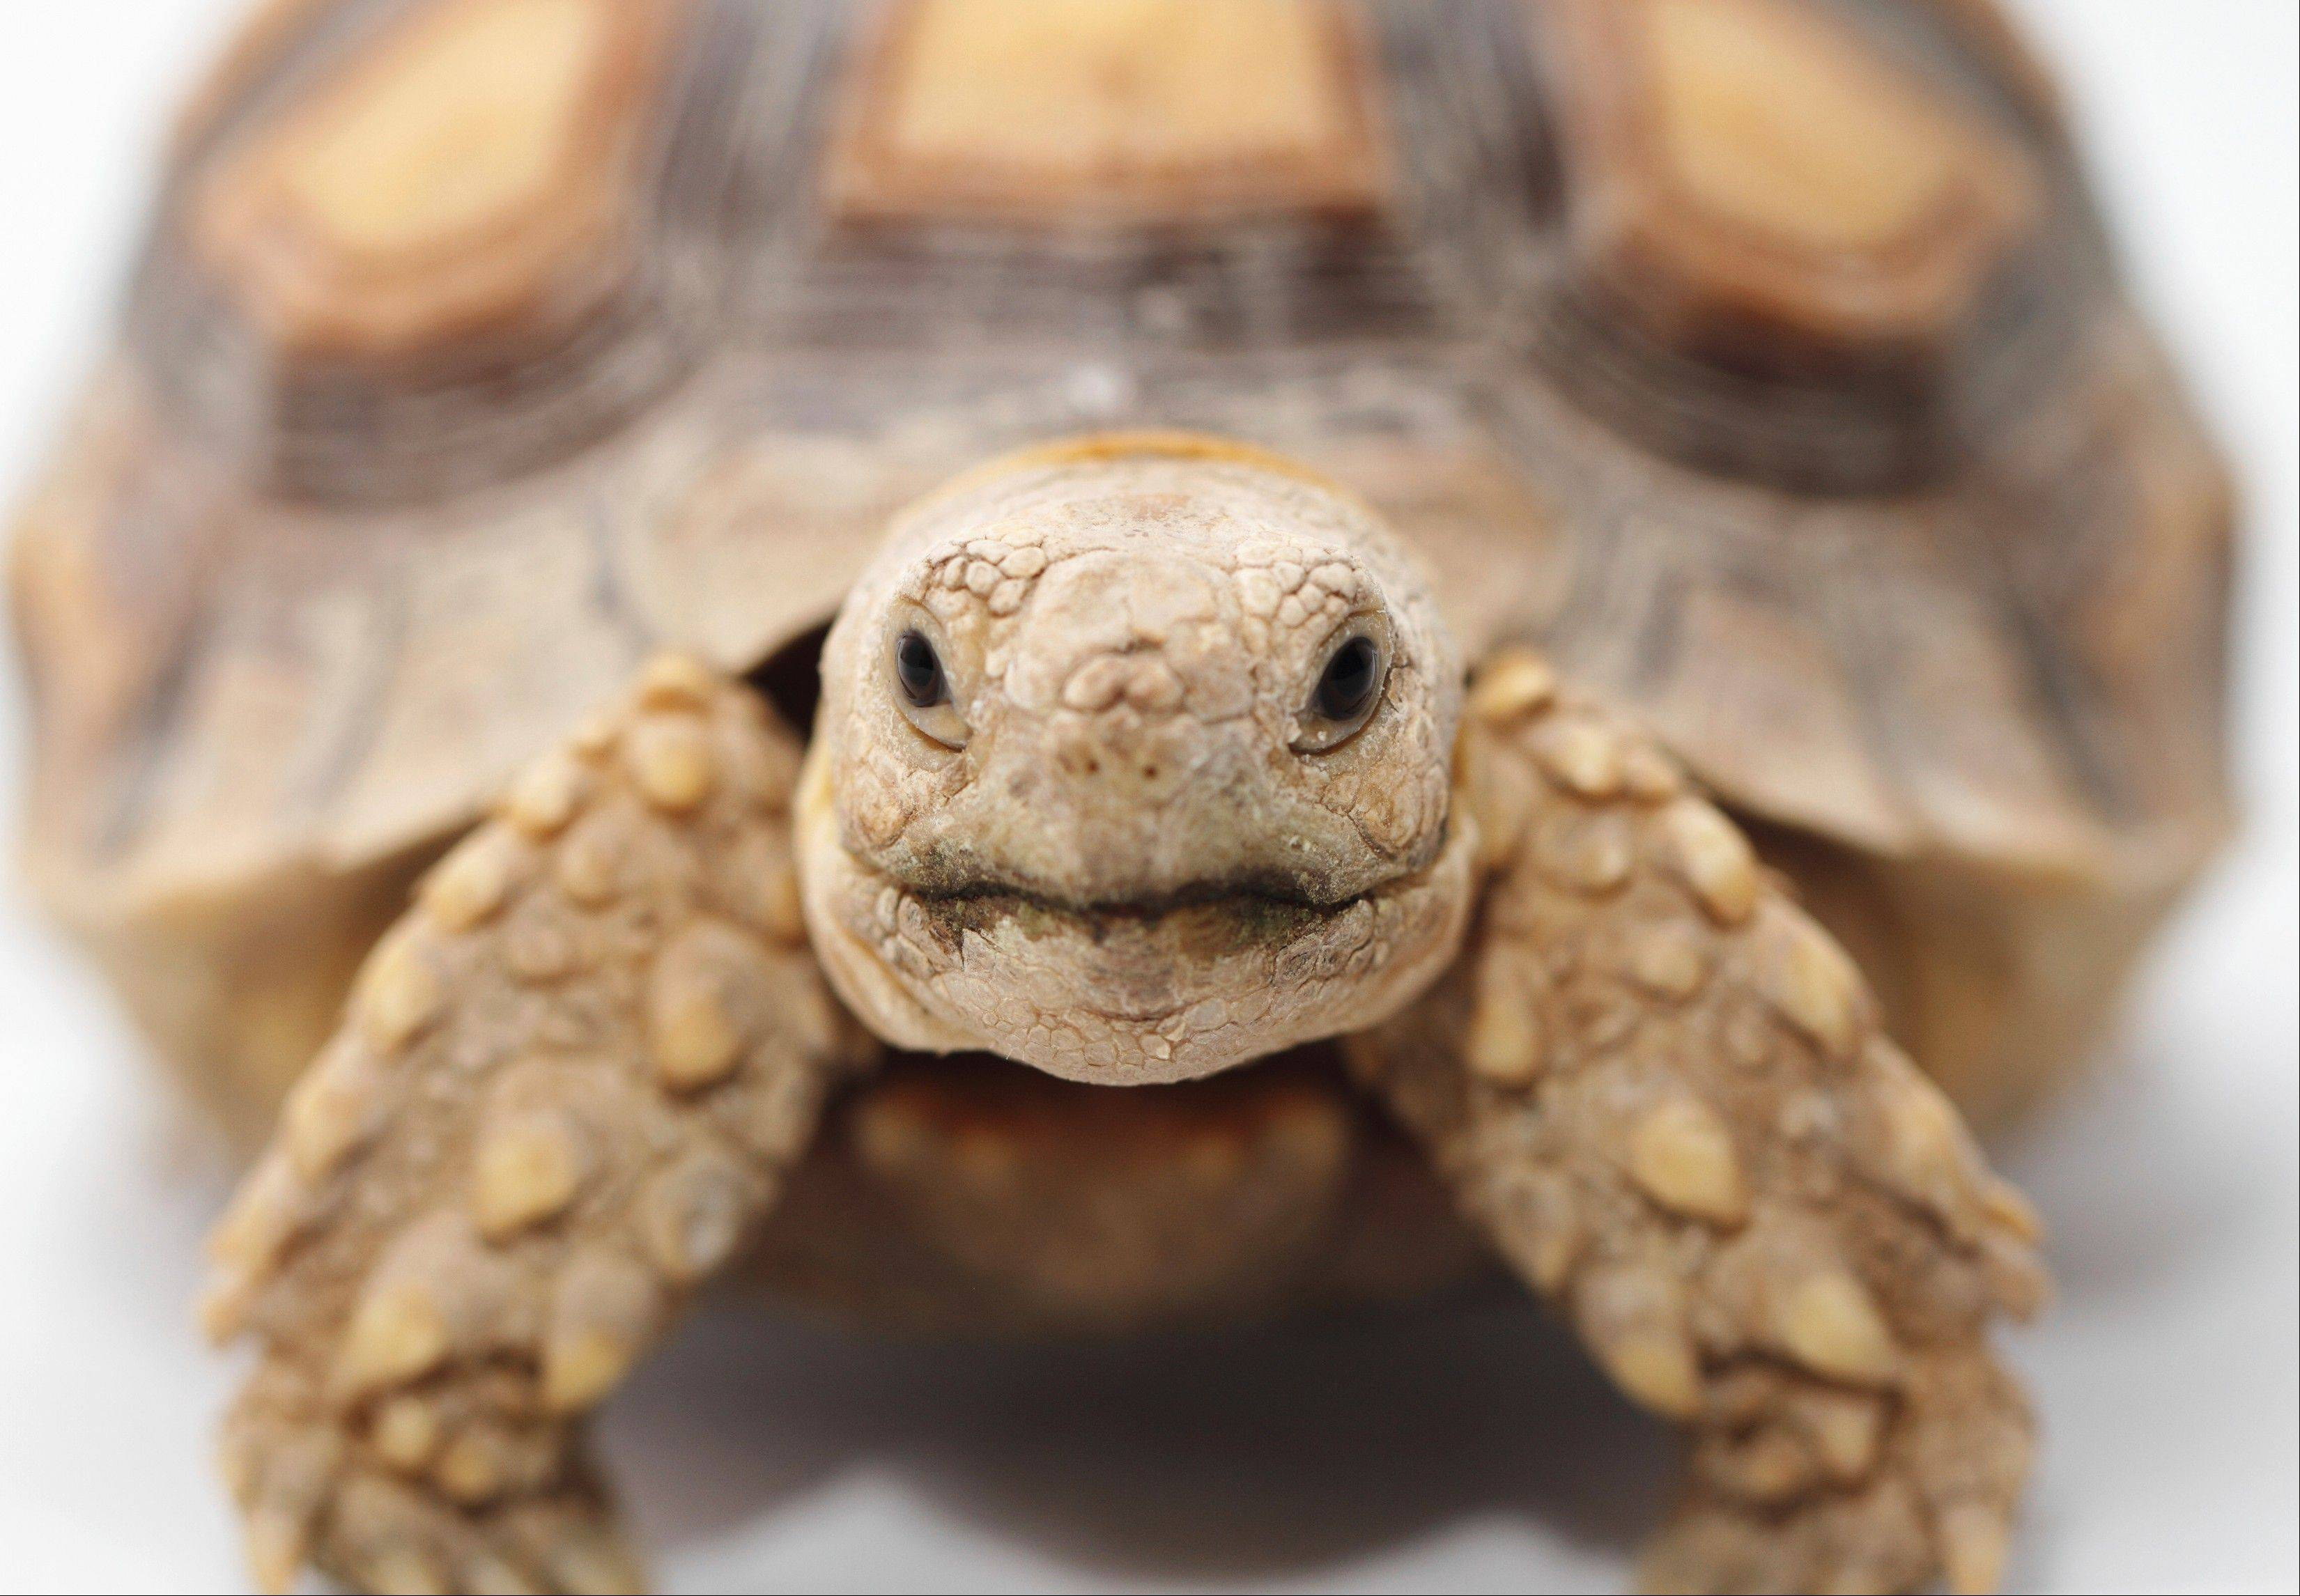 See a variety of reptiles, amphibians and exotic animals at Chicagoland Repticon, running June 29-30 at the Kane County Fairgrounds.